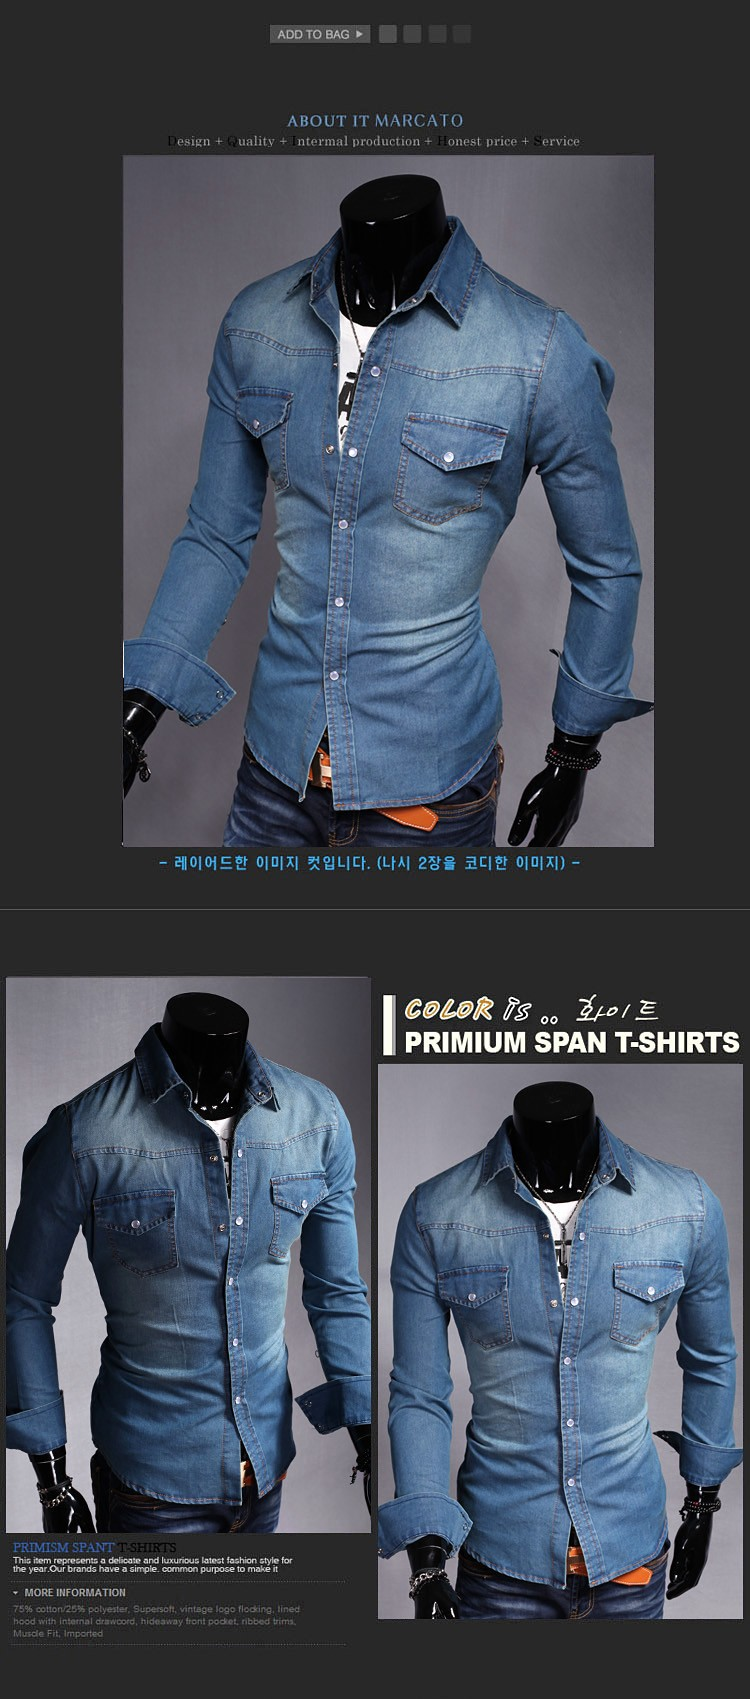 Мужская рубашка Shipping2015 Men'sJeans , fitnessformen'sblouse, 2 chestwith3Colors